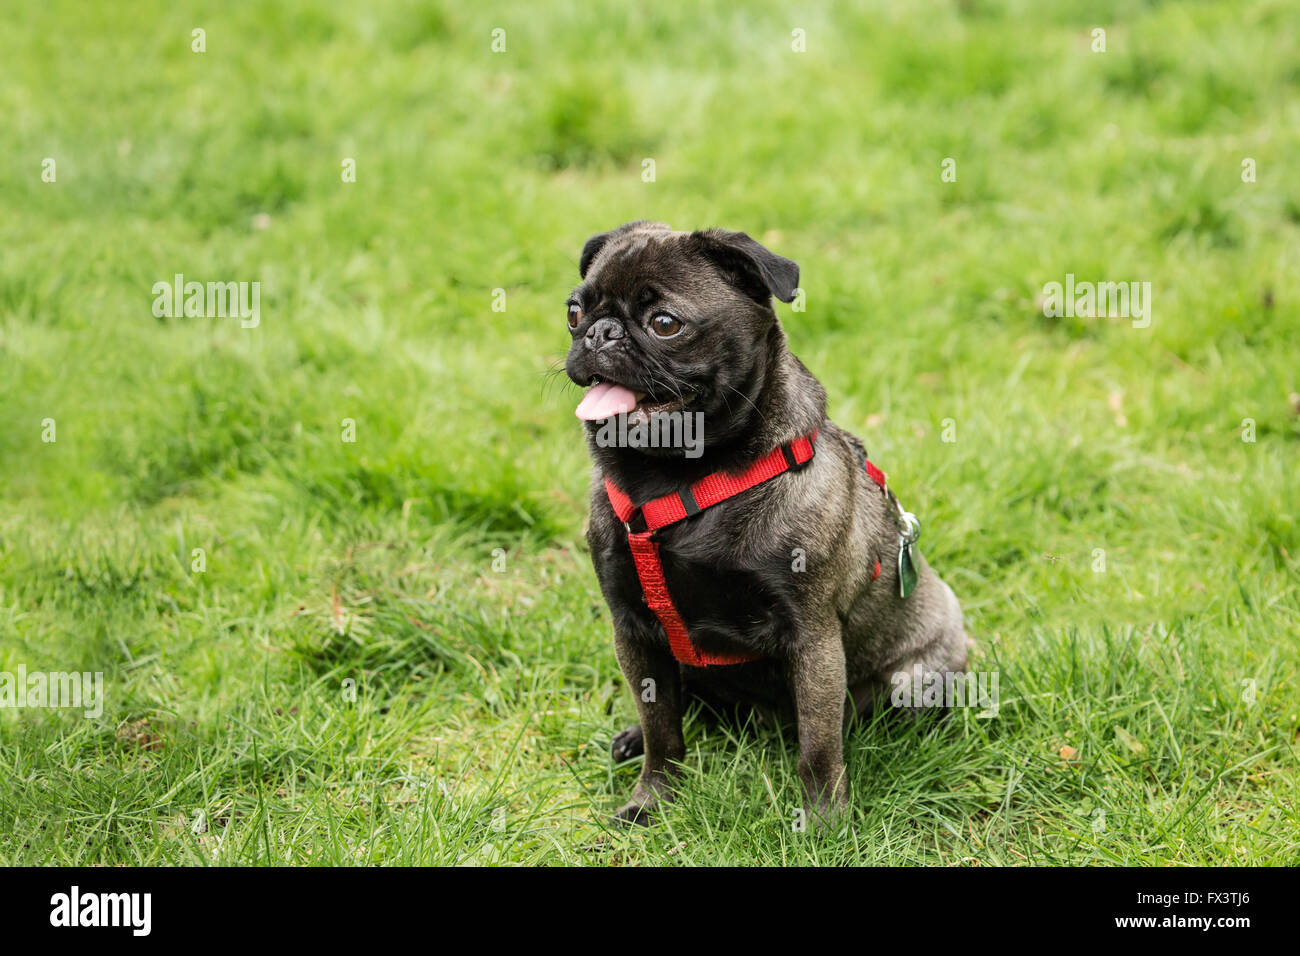 Olive, the Pug, sitting in the yard in Issaquah, Washington, USA - Stock Image